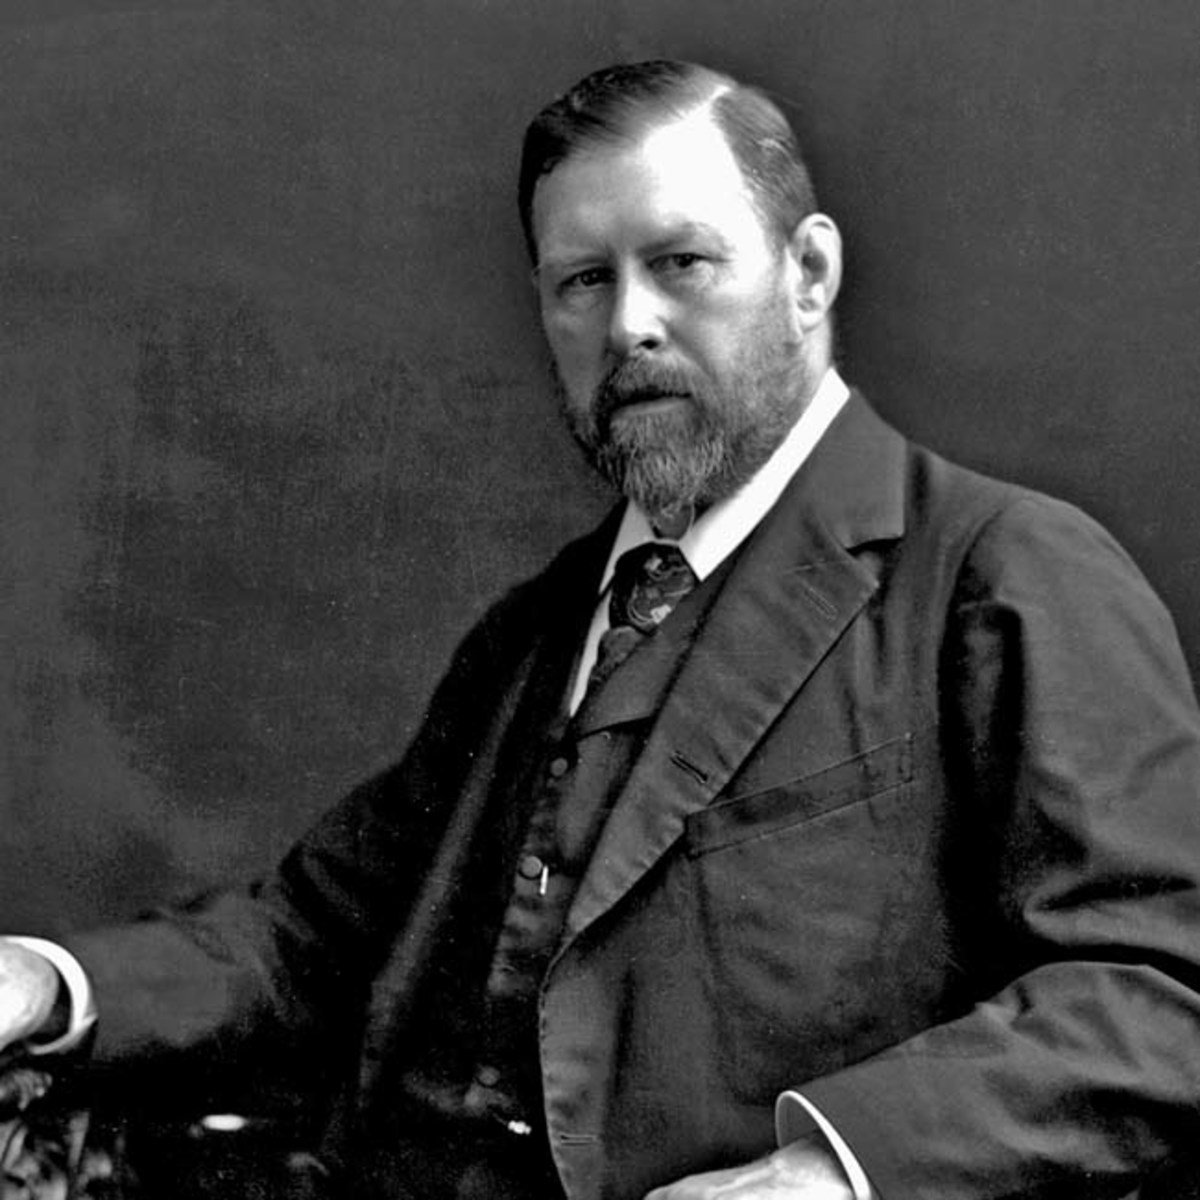 'Bram woz 'ere'. The Irish author Abraham 'Bram' Stoker in enigmatic pose